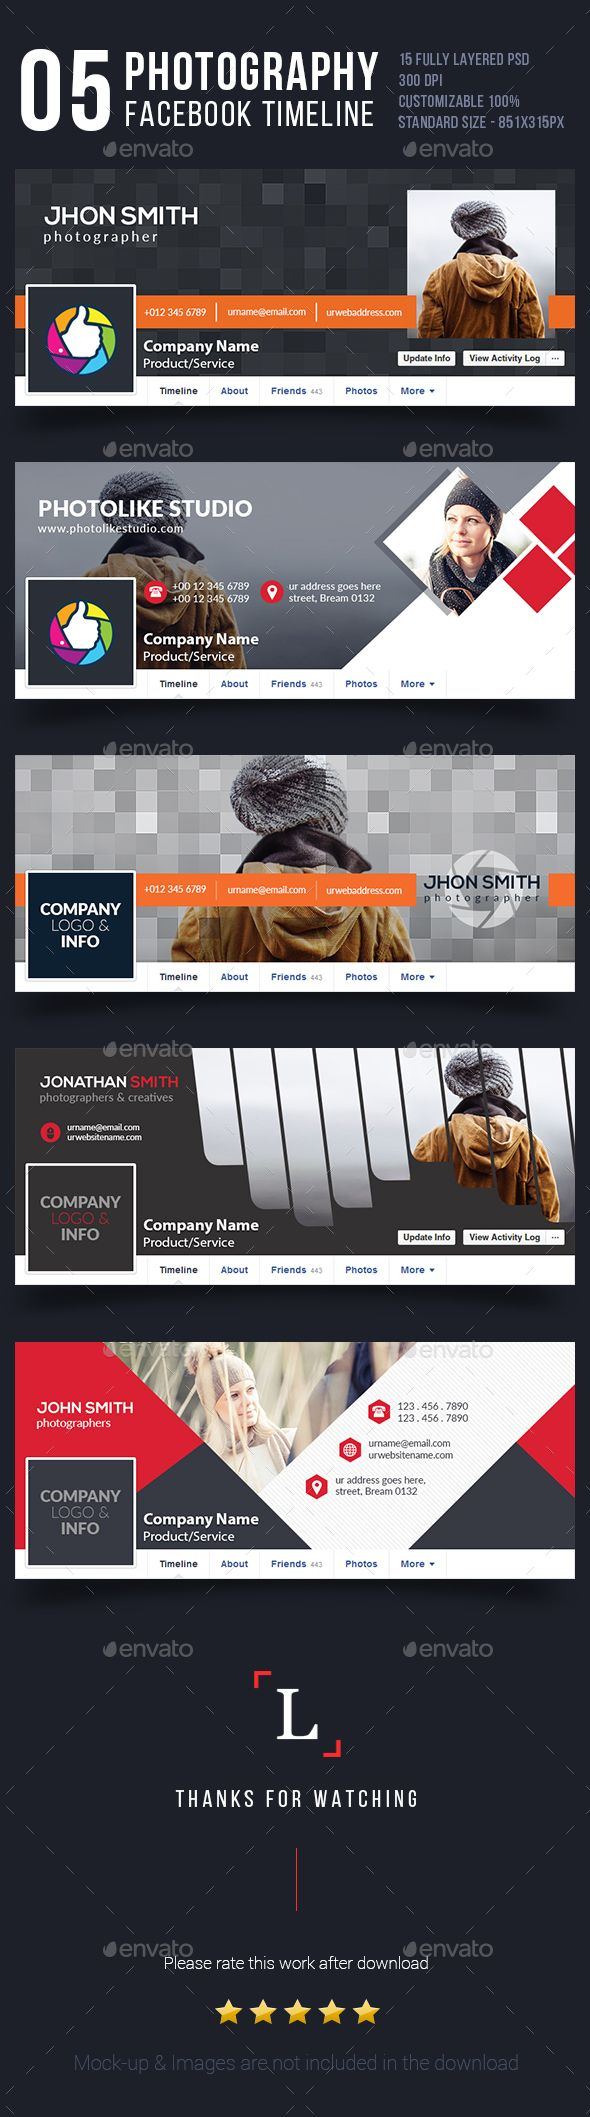 Photography Facebook Covers Bundle 145 best Cover